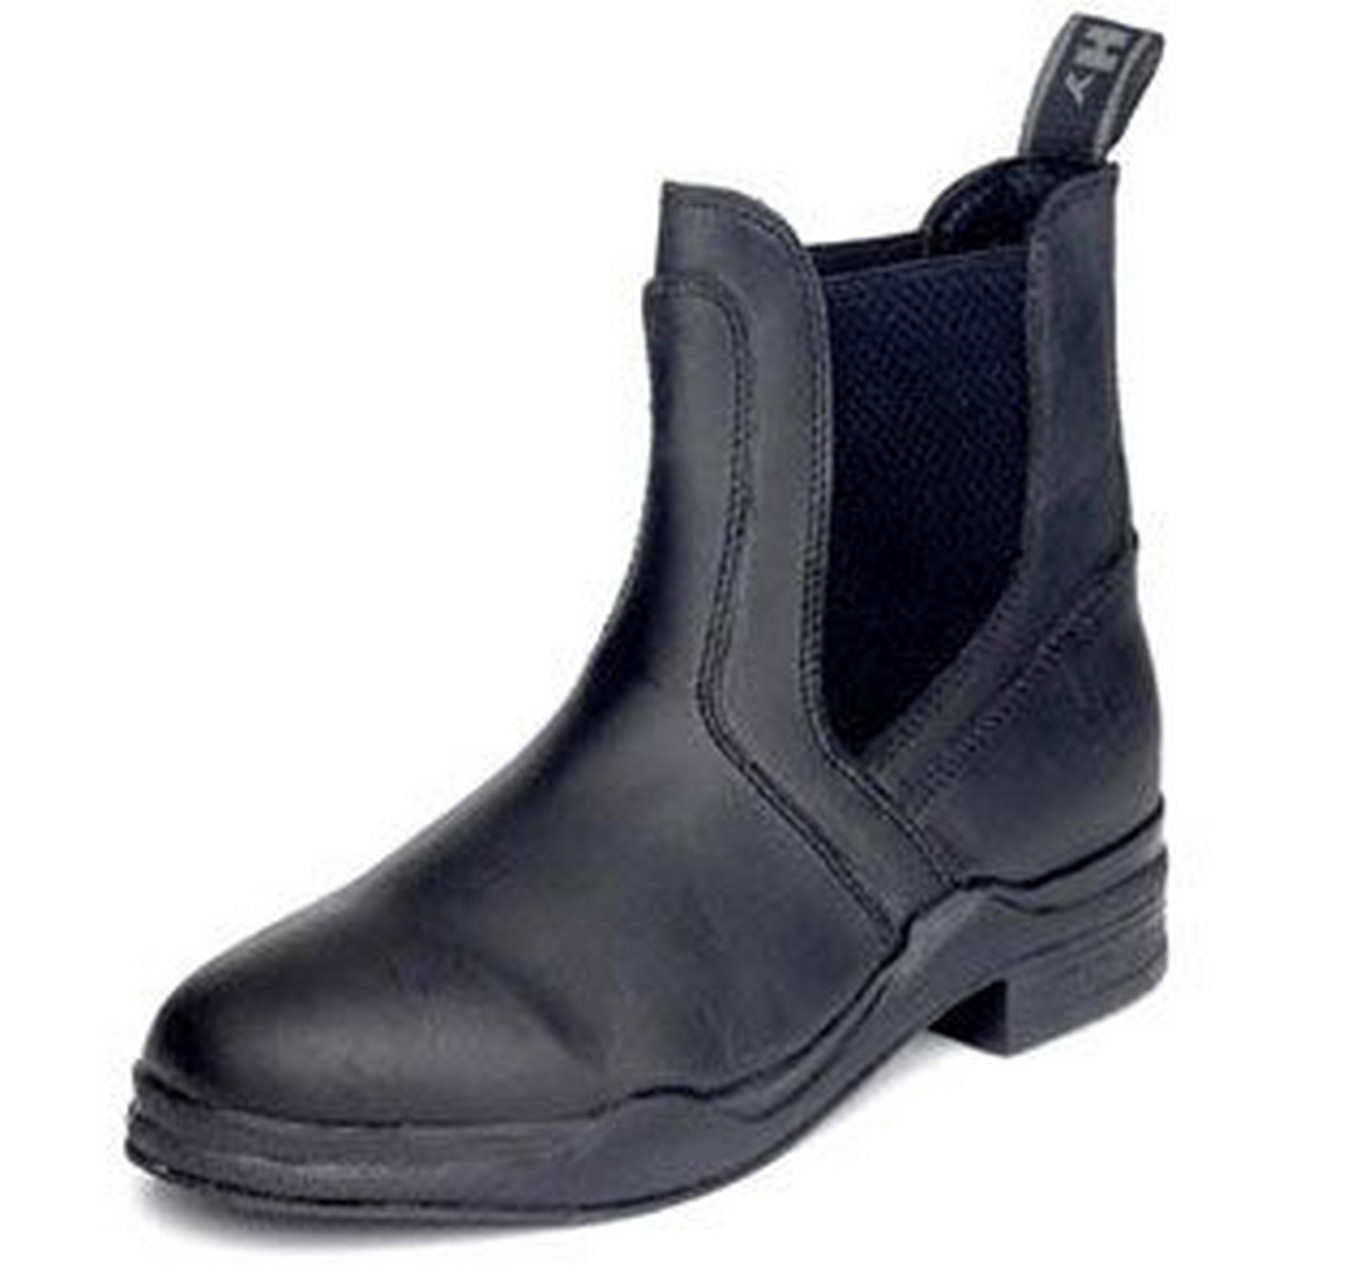 Leather Jodhpur Boot Black 4